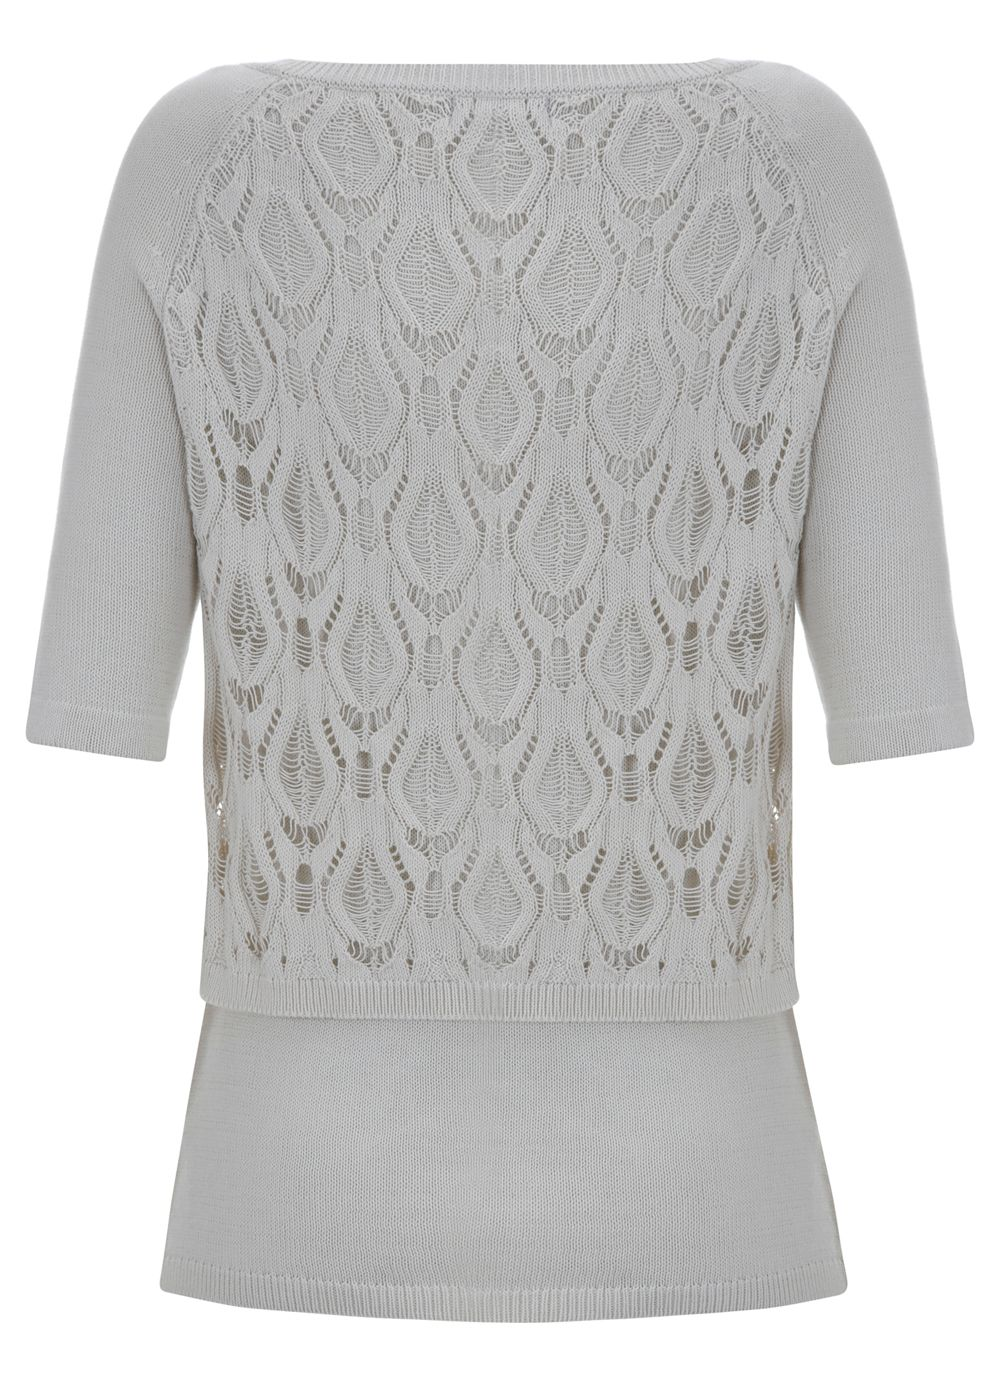 Vanilla lace layer knit